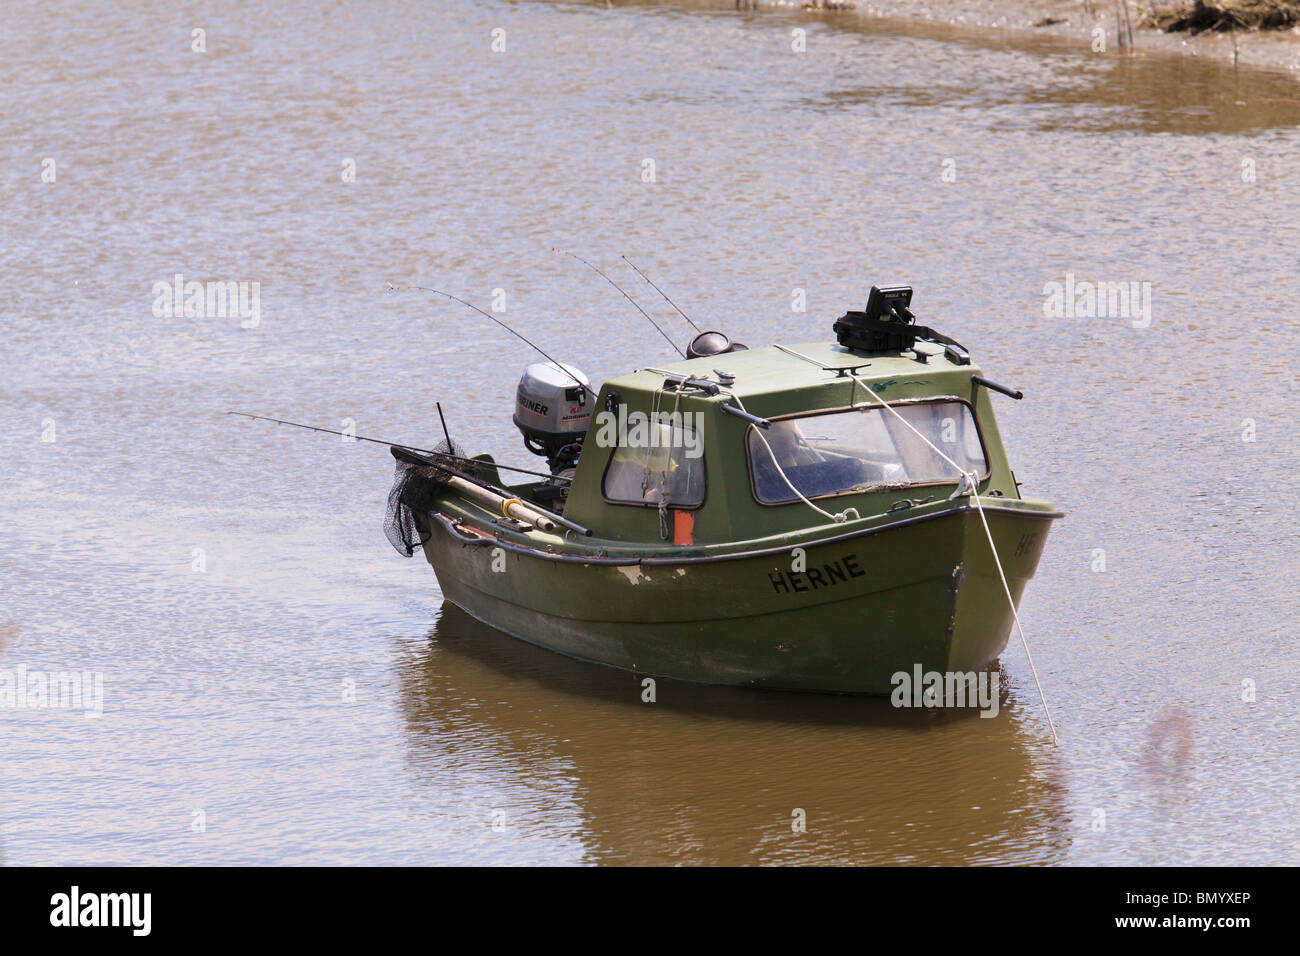 small motor fishing boat with one fisherman and many